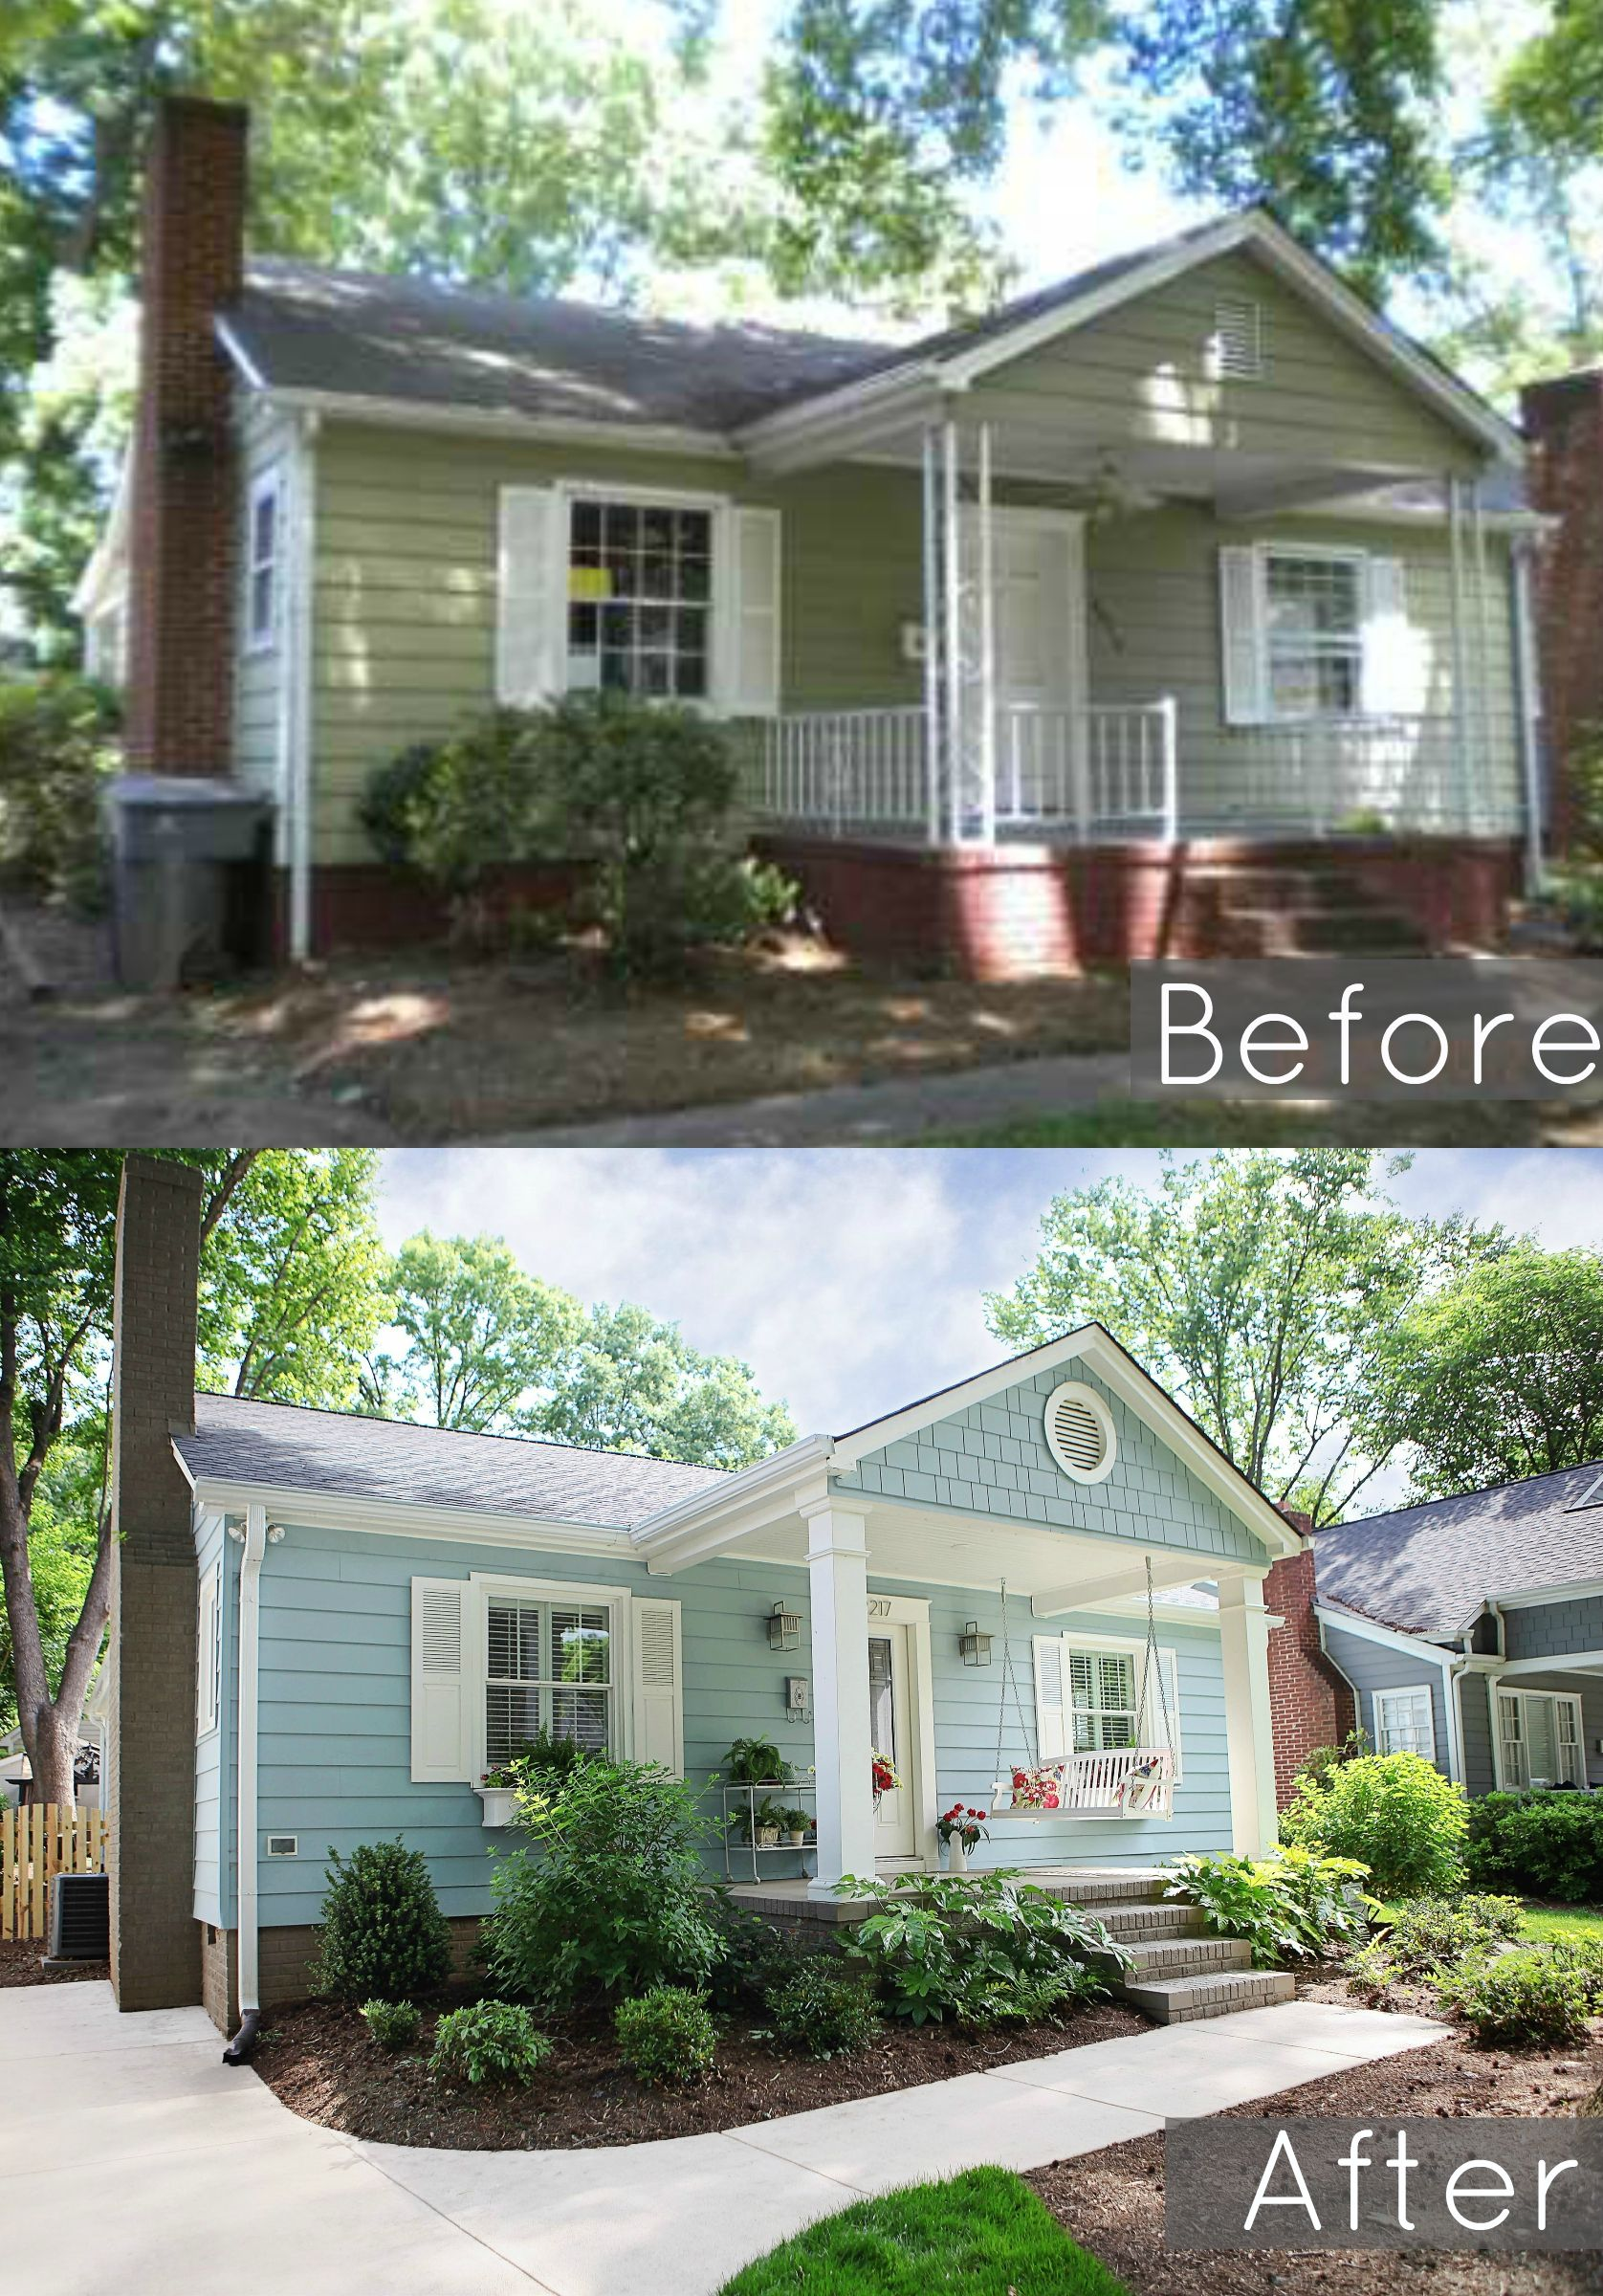 Before and after of our 1940 39 s bungalows exterior for 70s house exterior makeover australia